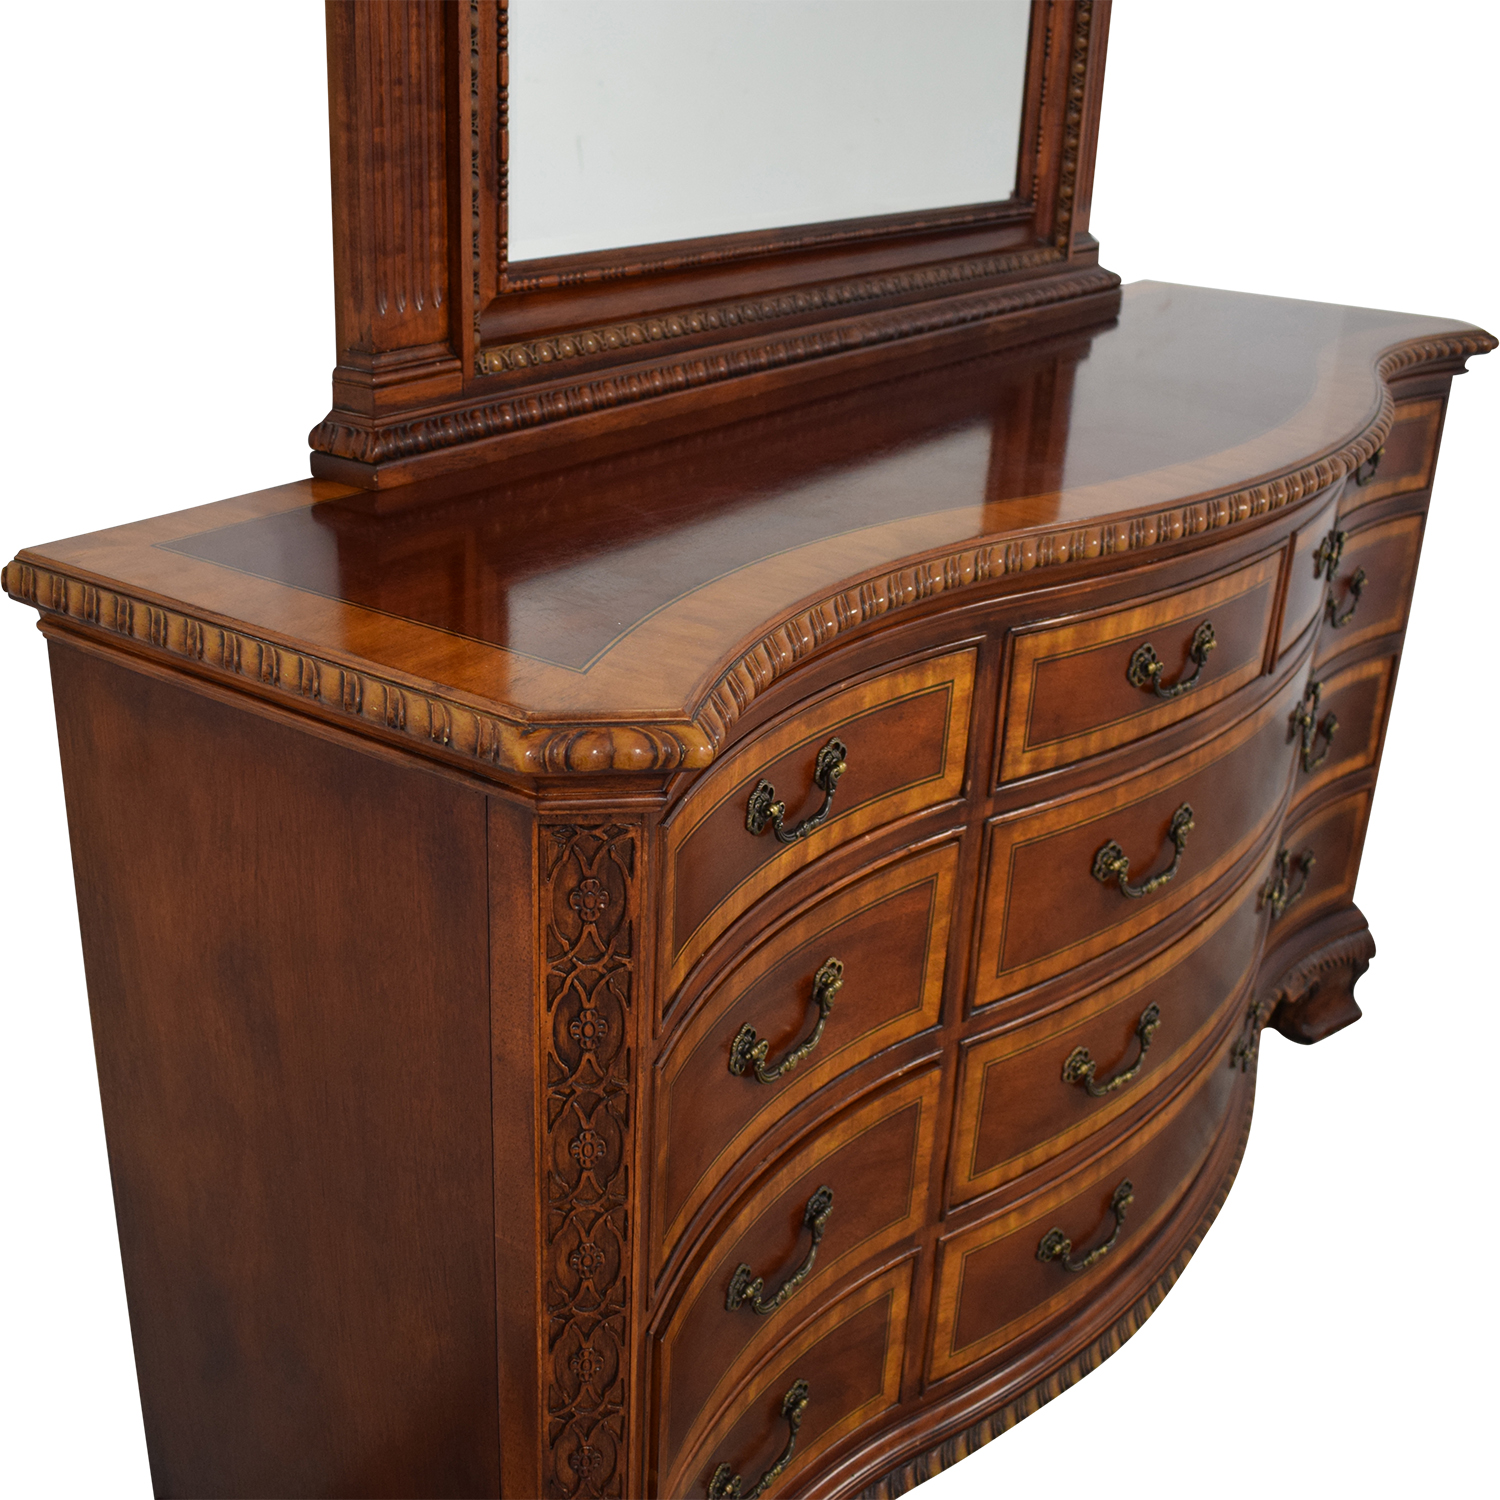 Universal Furniture Universal Furniture Chest of Drawers with Mirror on sale